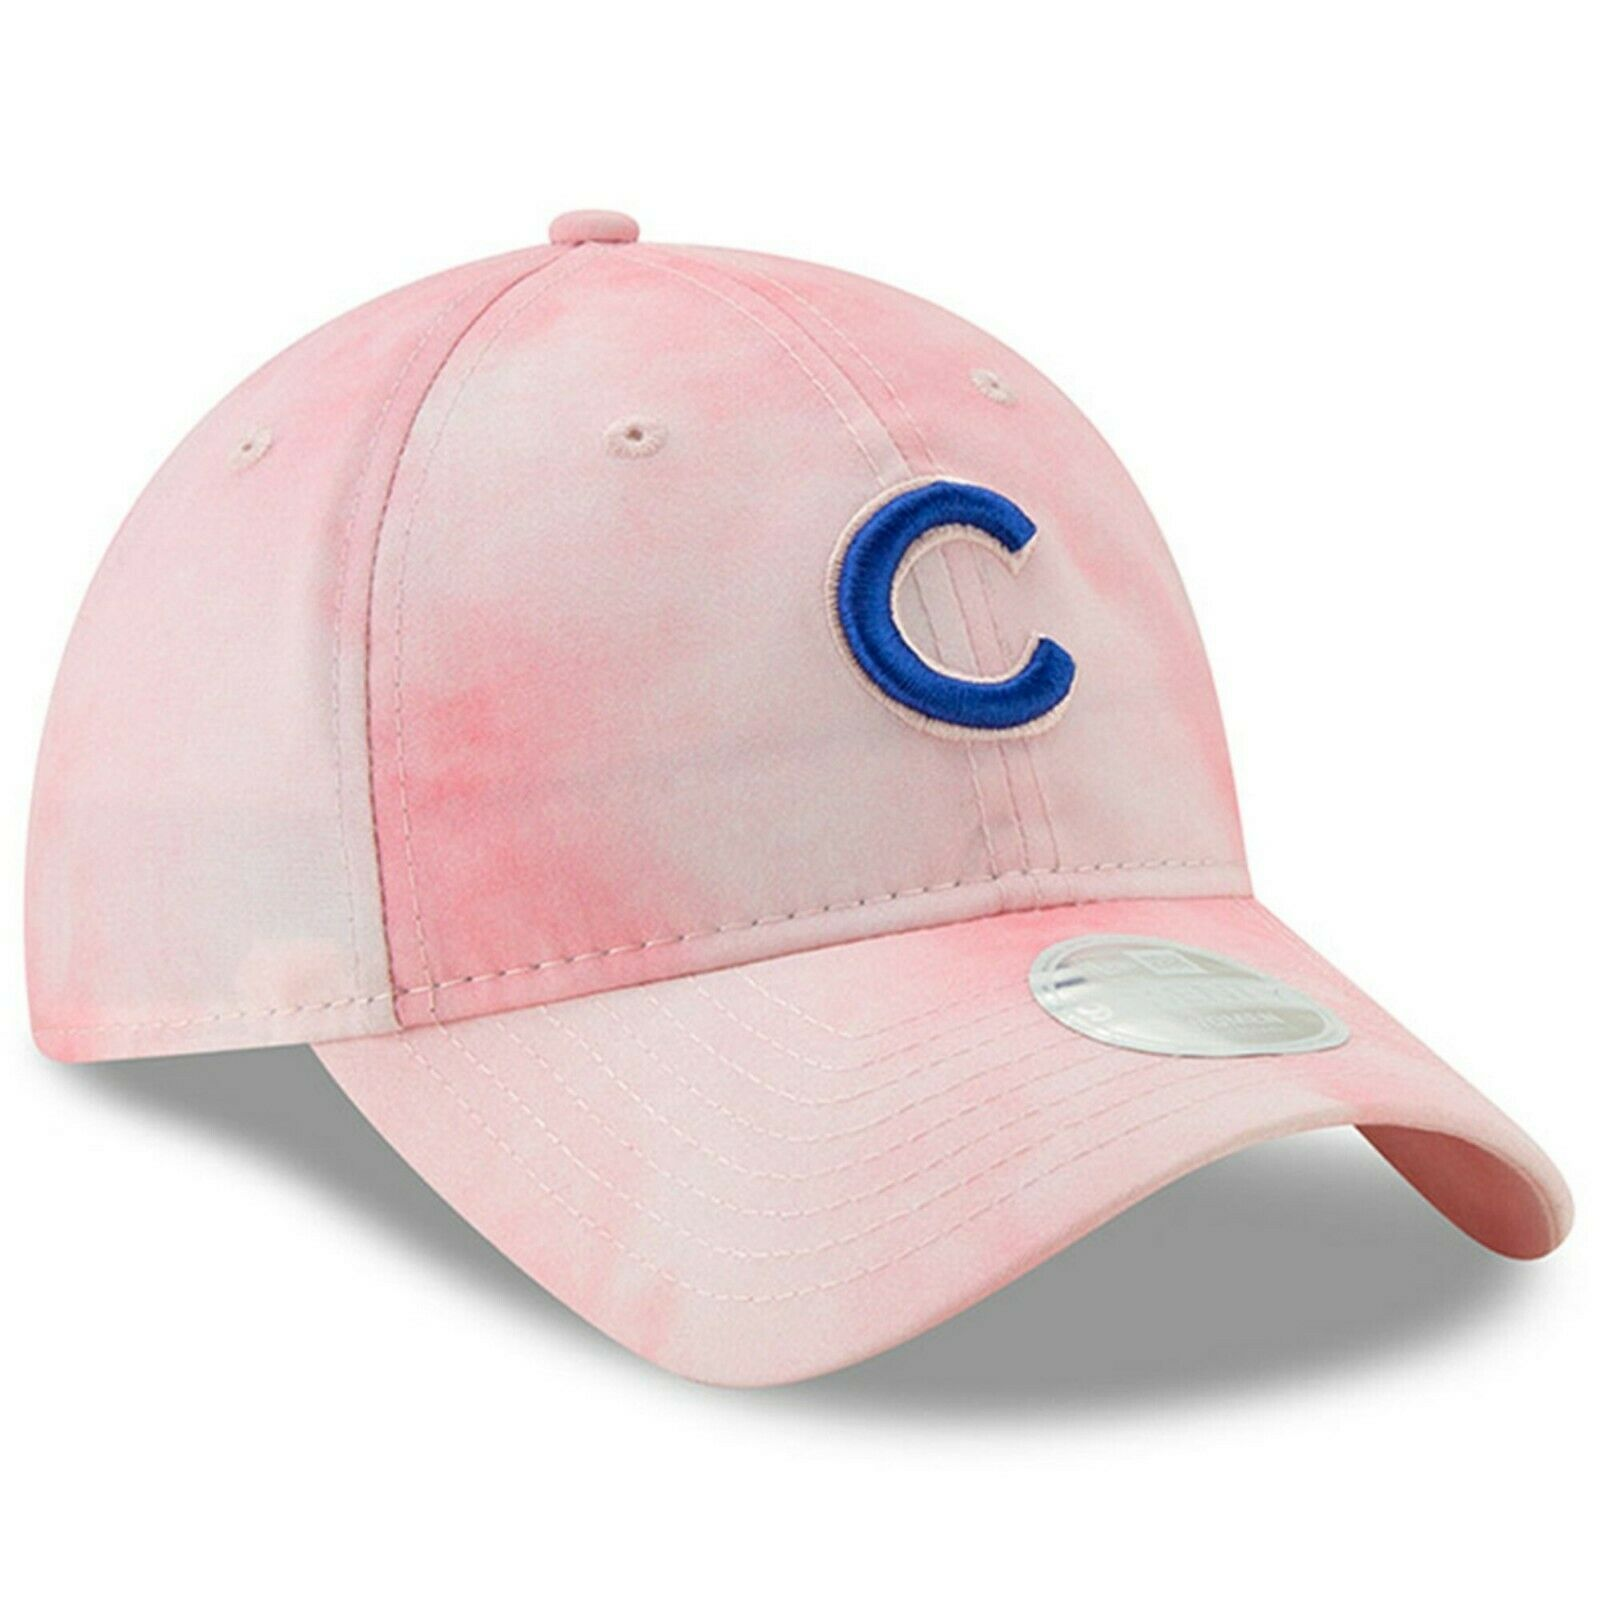 81c168f2998242 Chicago Cubs Mothers Day Adjustable Cap and 38 similar items